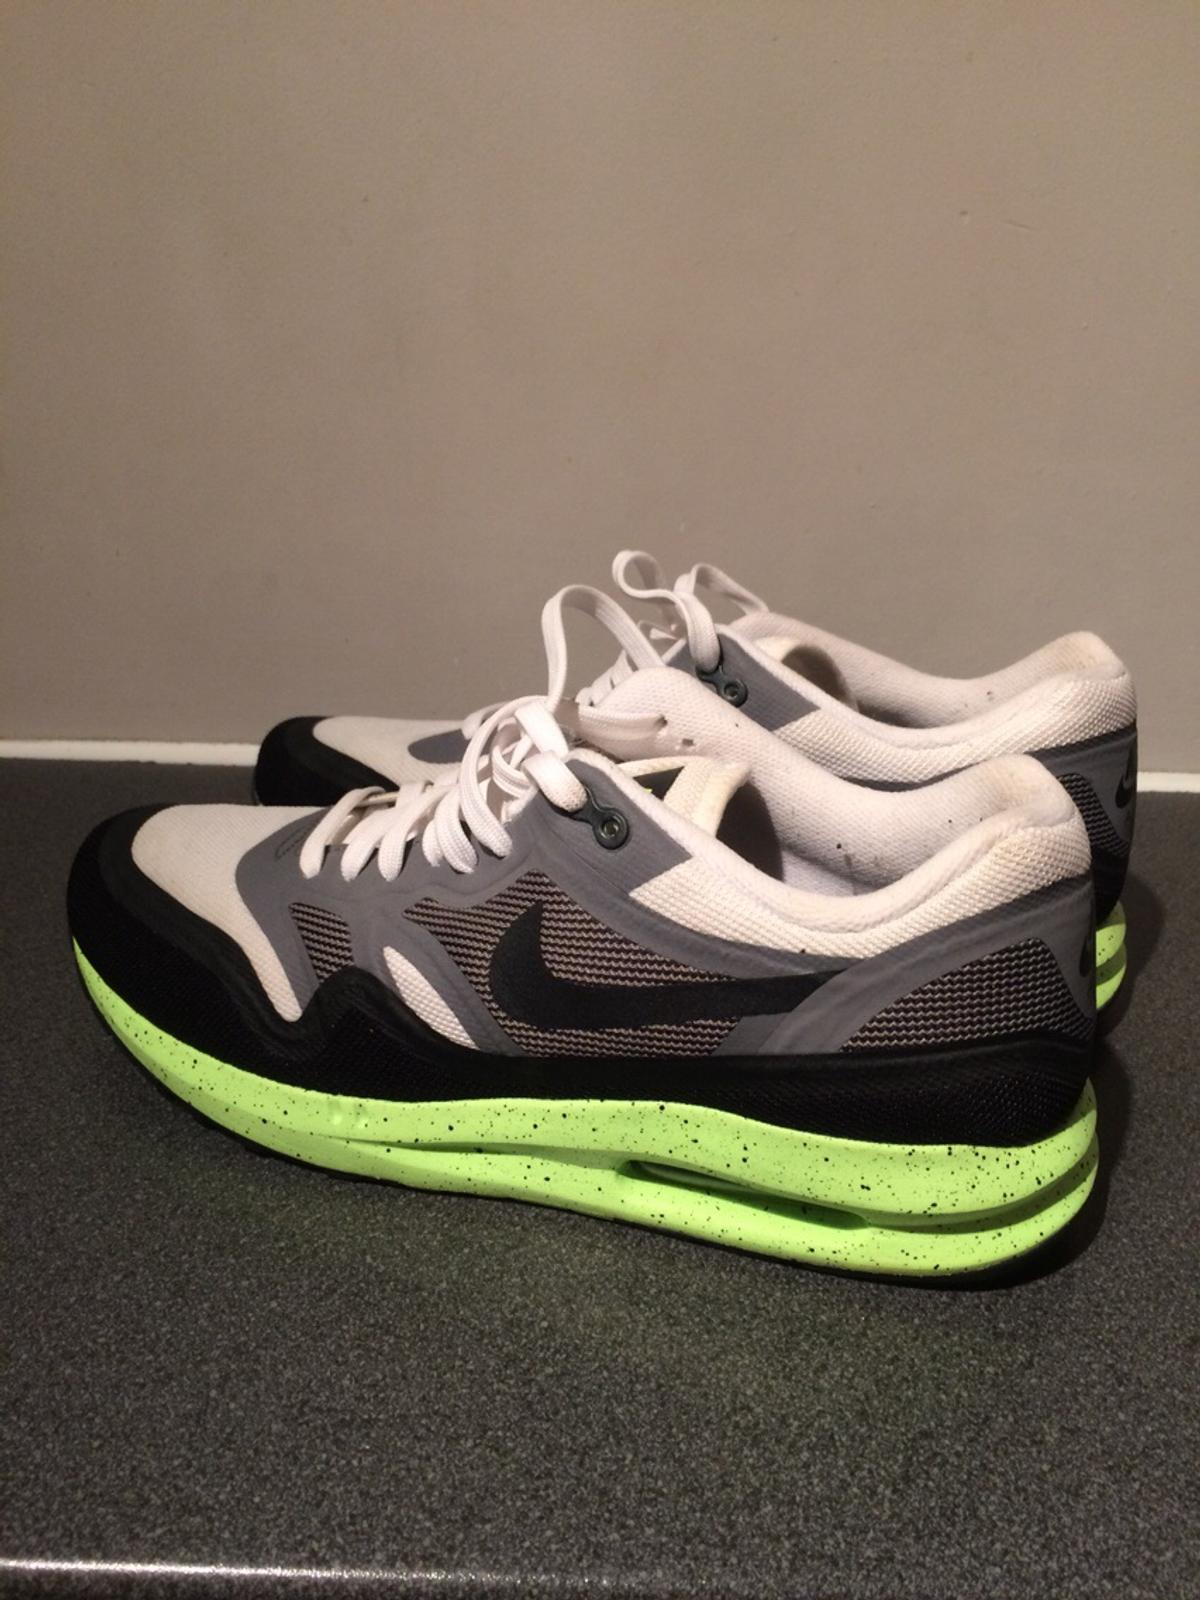 Goede Nike air max in B60 Bromsgrove for £40.00 for sale - Shpock FH-64